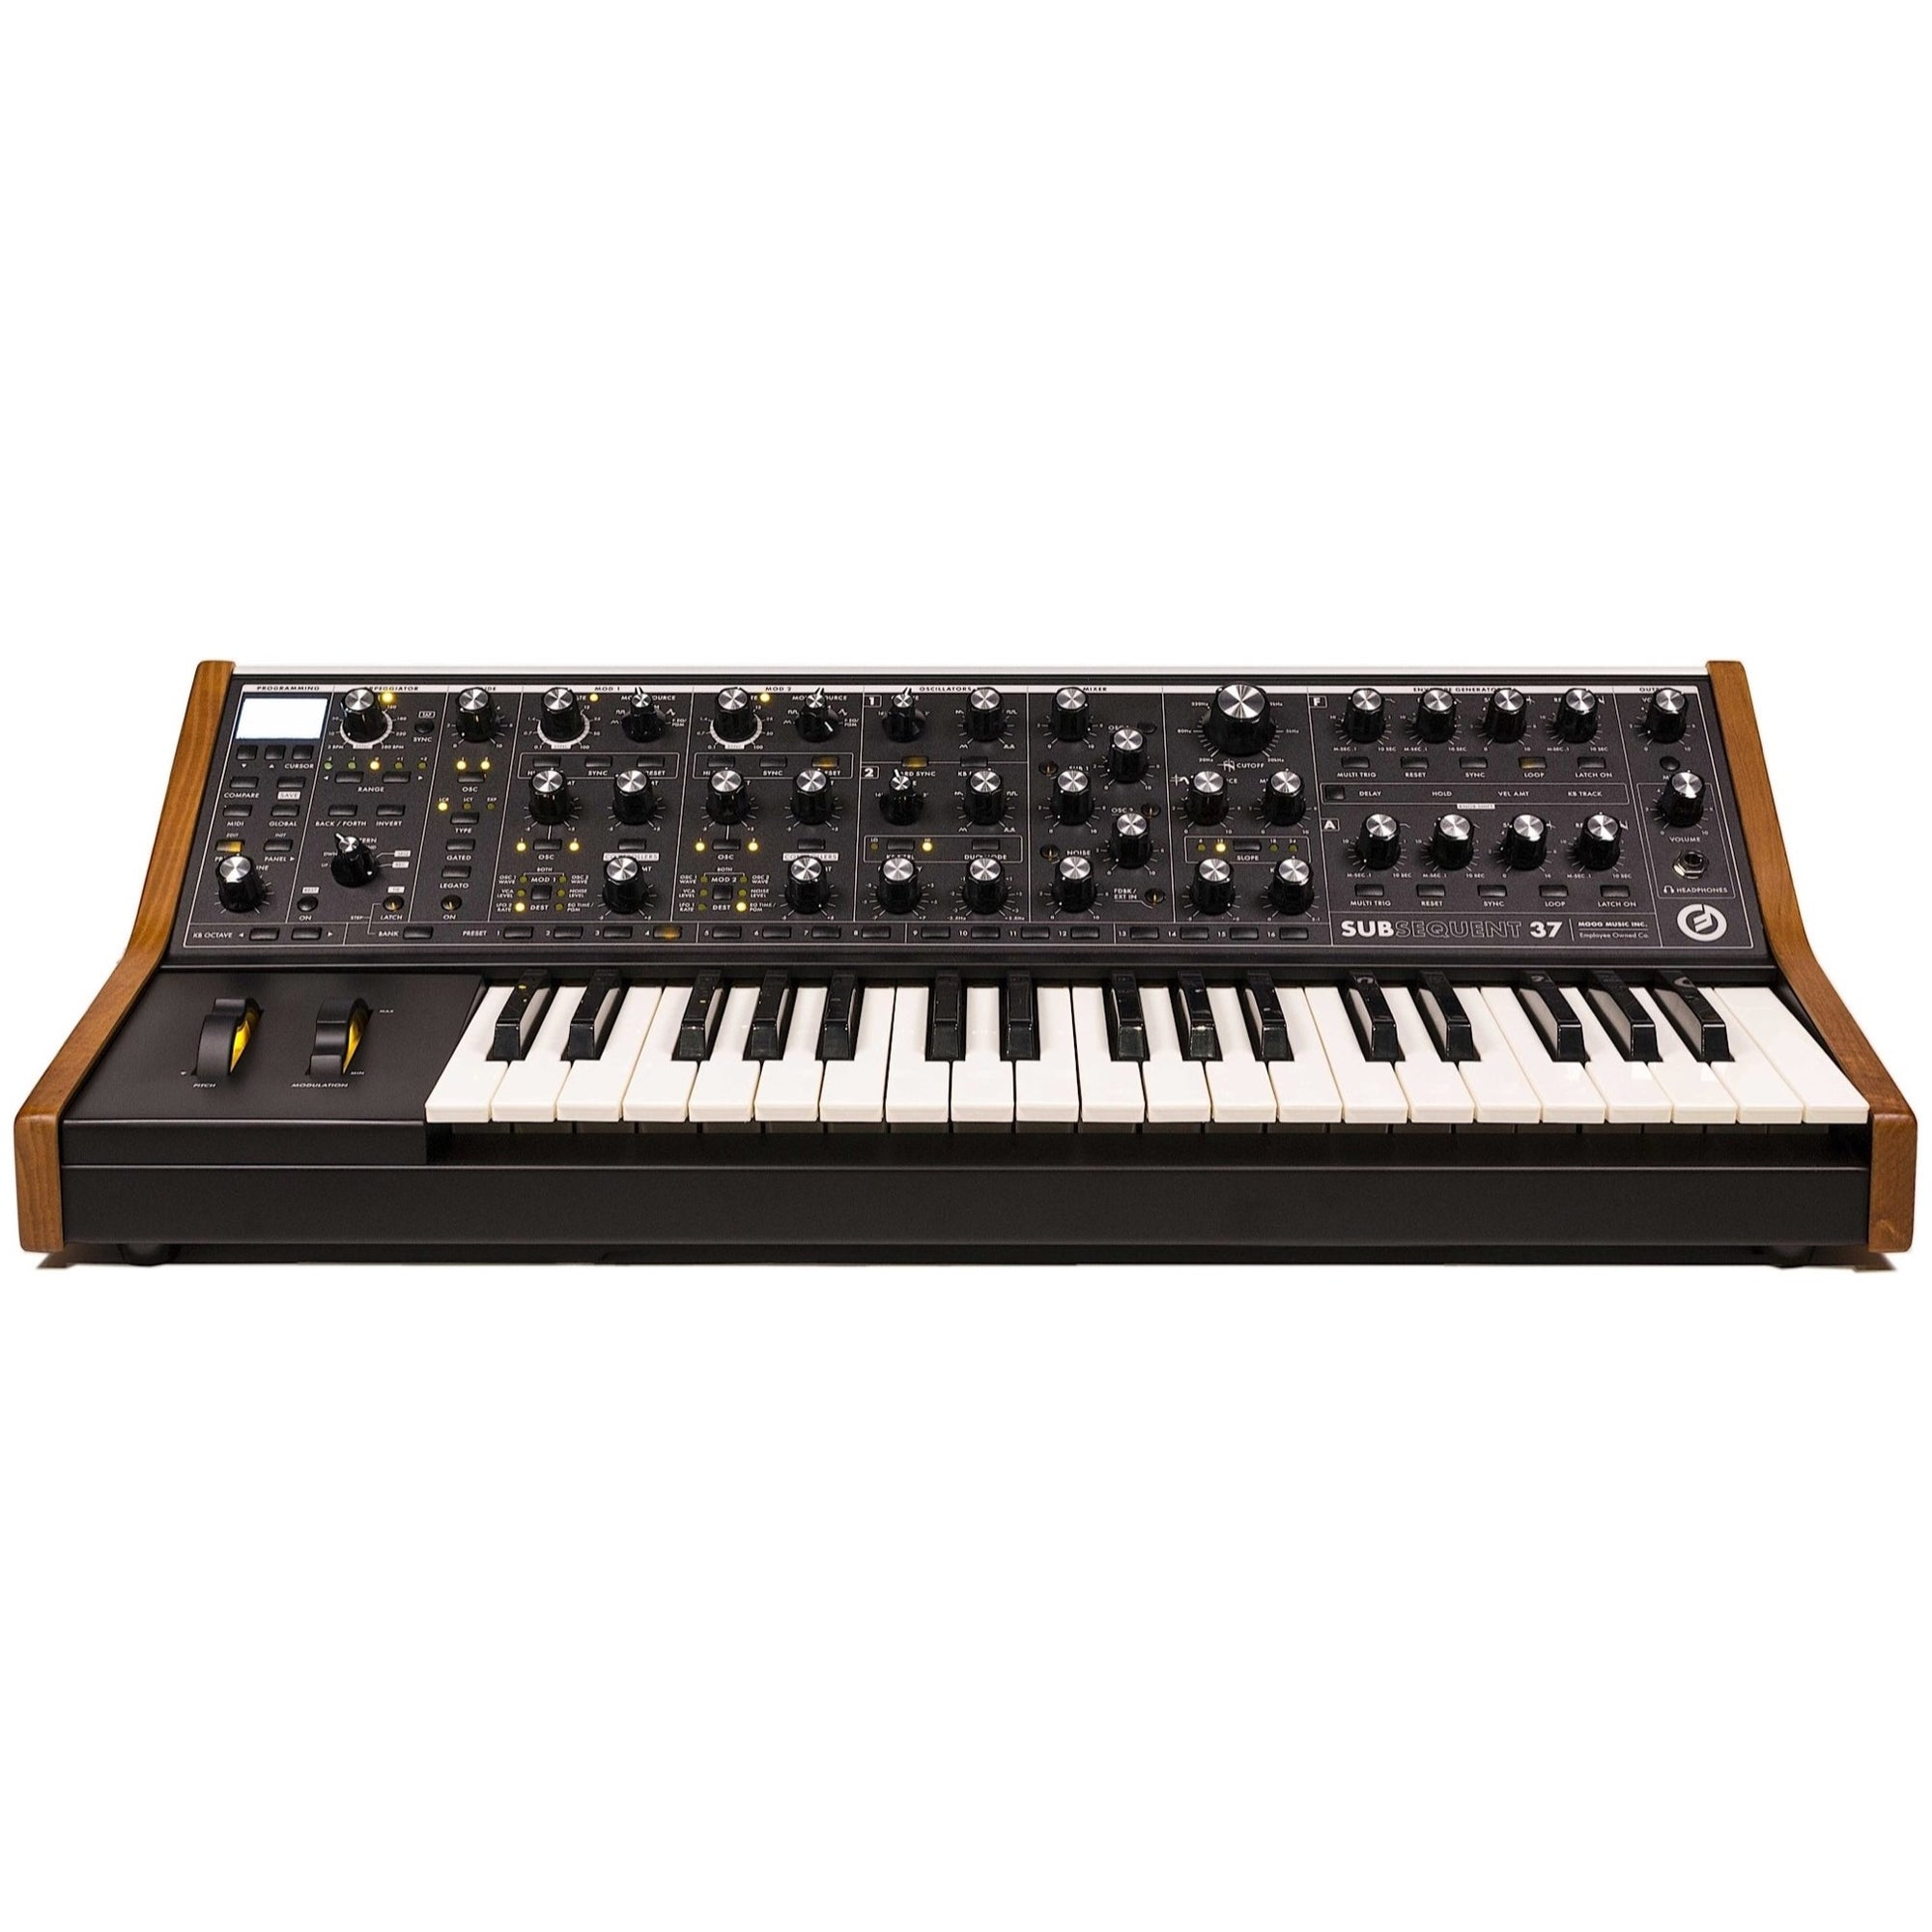 Moog Subsequent 37 Analog Synthesizer Keyboard